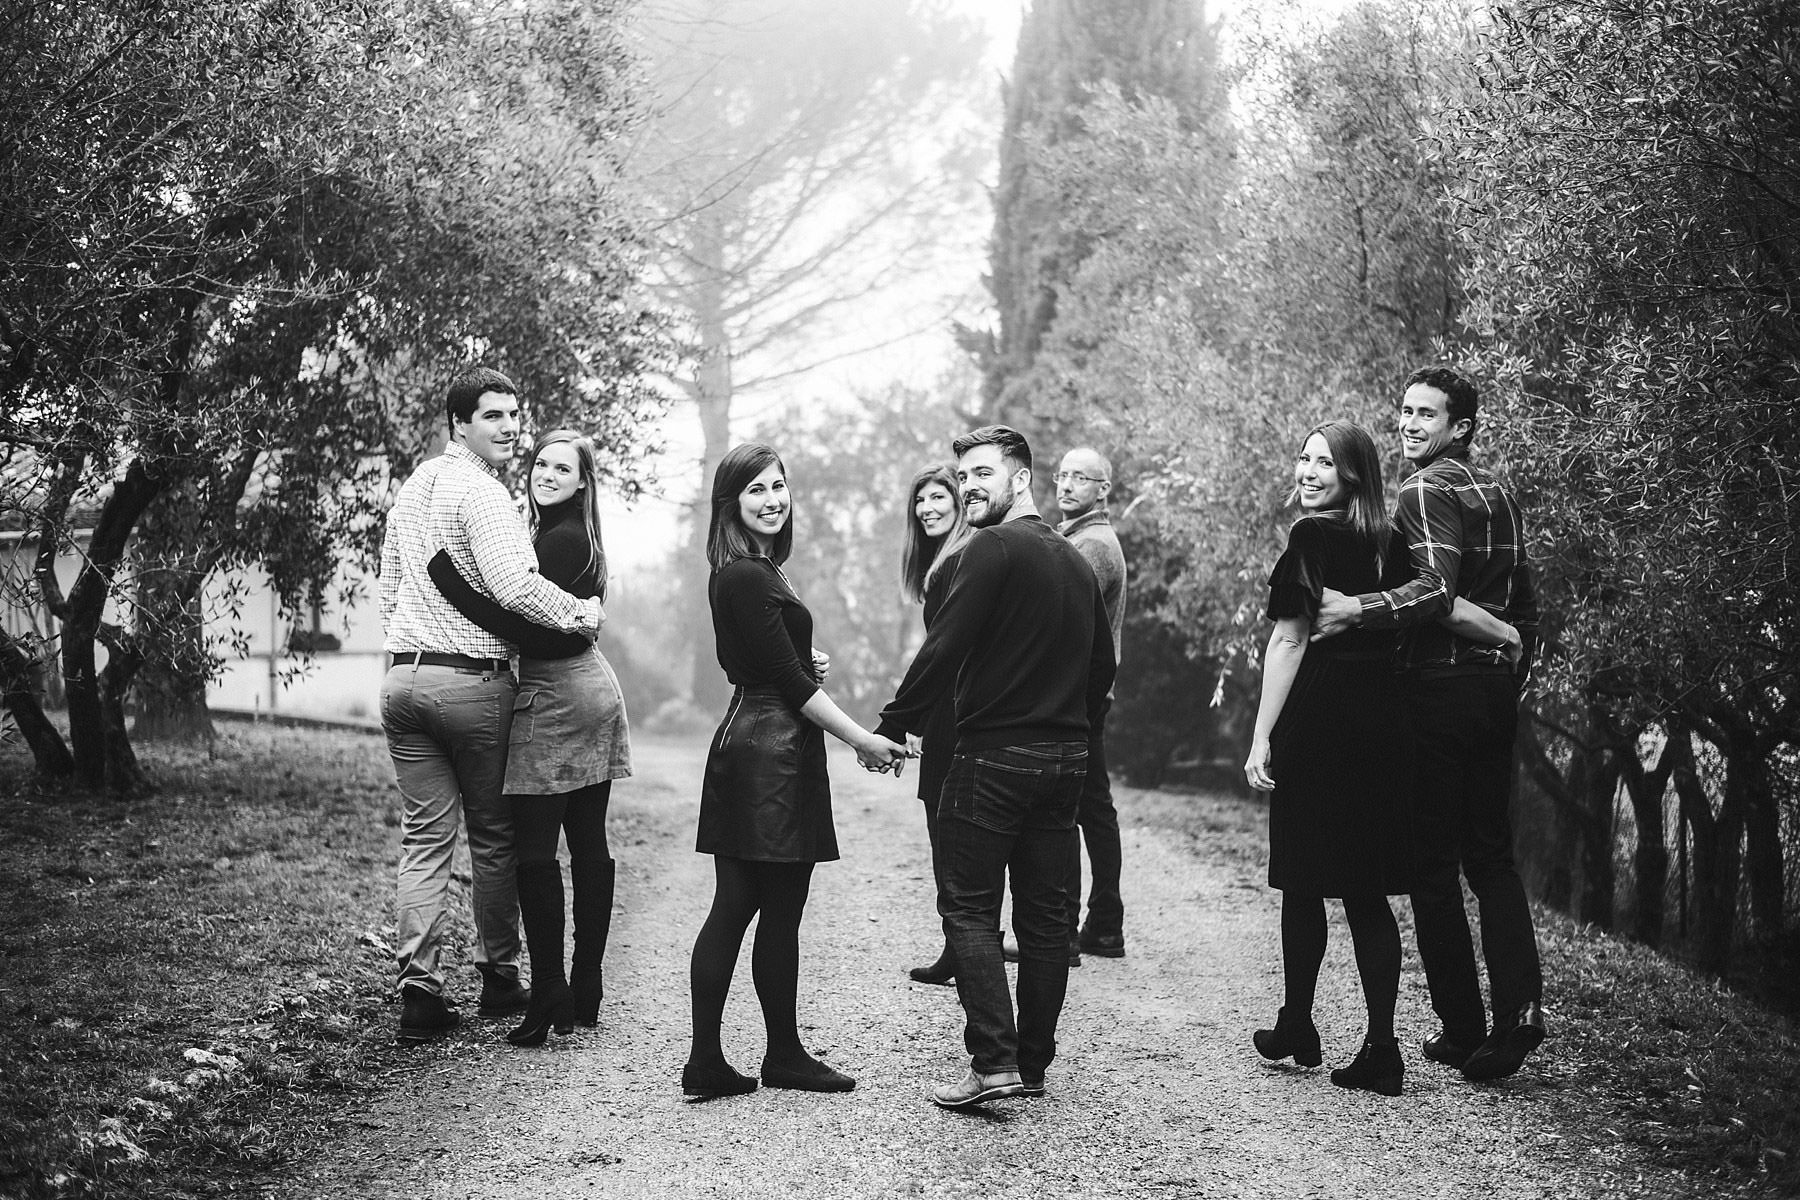 Family reunion photo shoot in Tuscany countryside during Christmas holidays